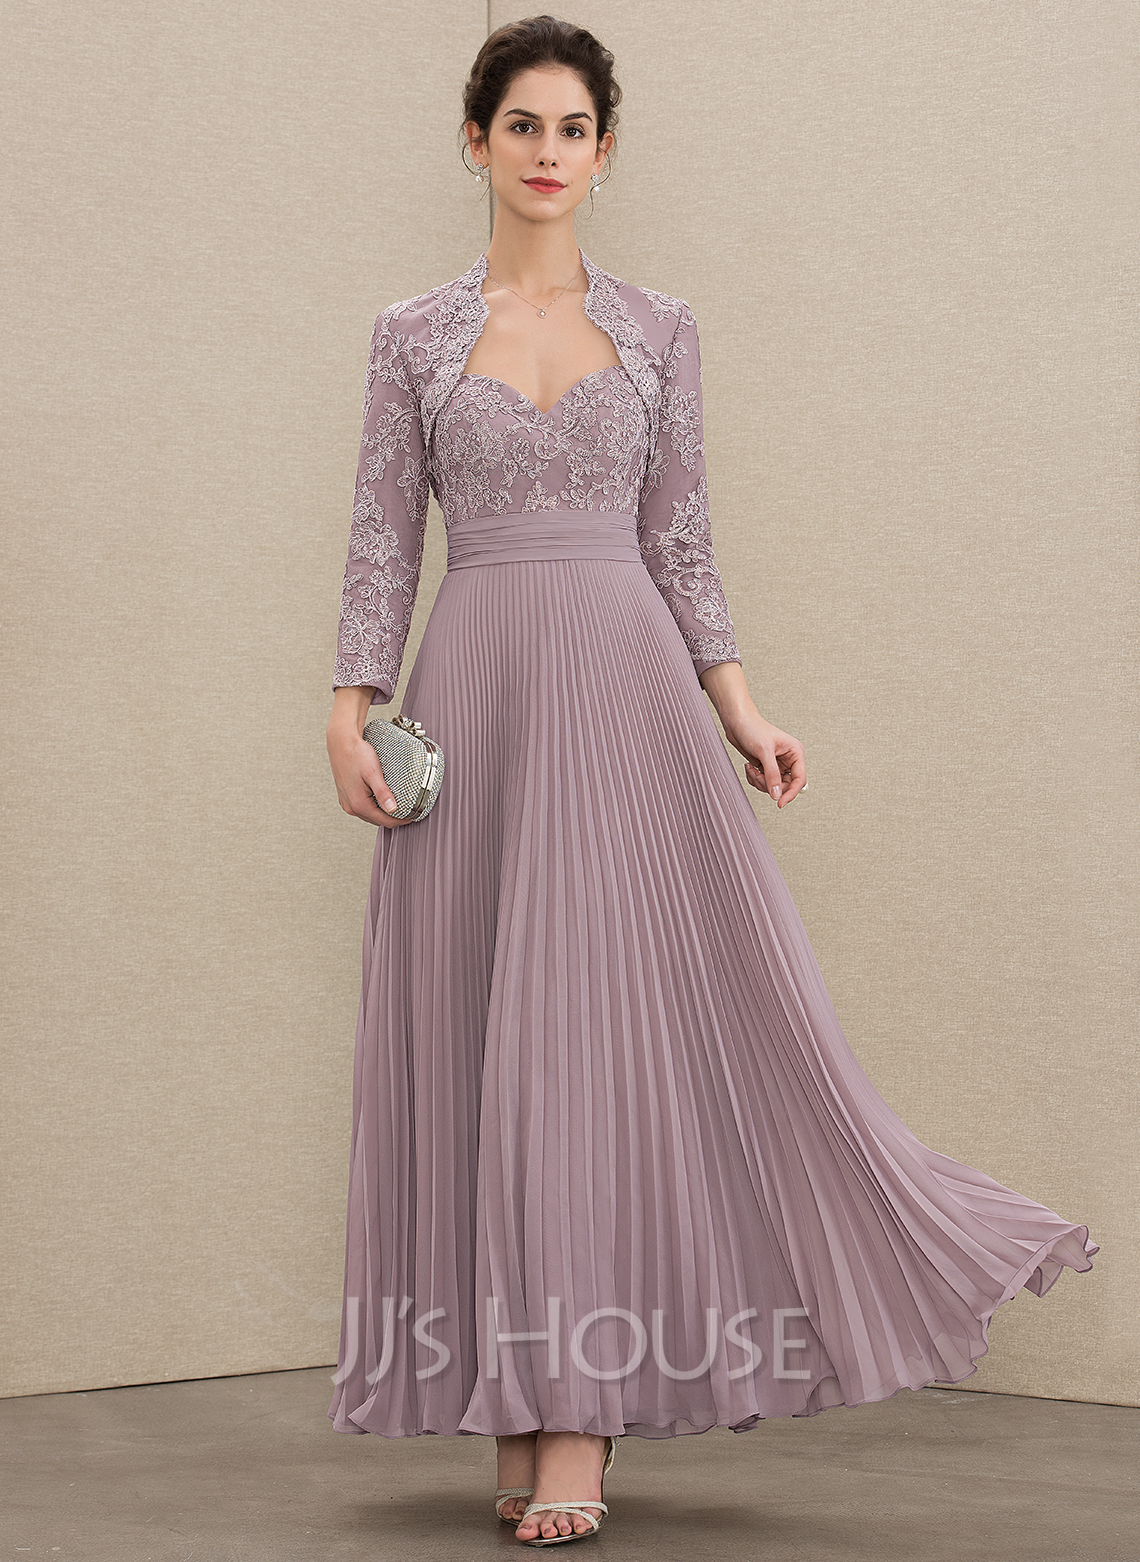 Sweetheart Ankle-Length Chiffon Lace Mother of the Bride Dress With Pleated